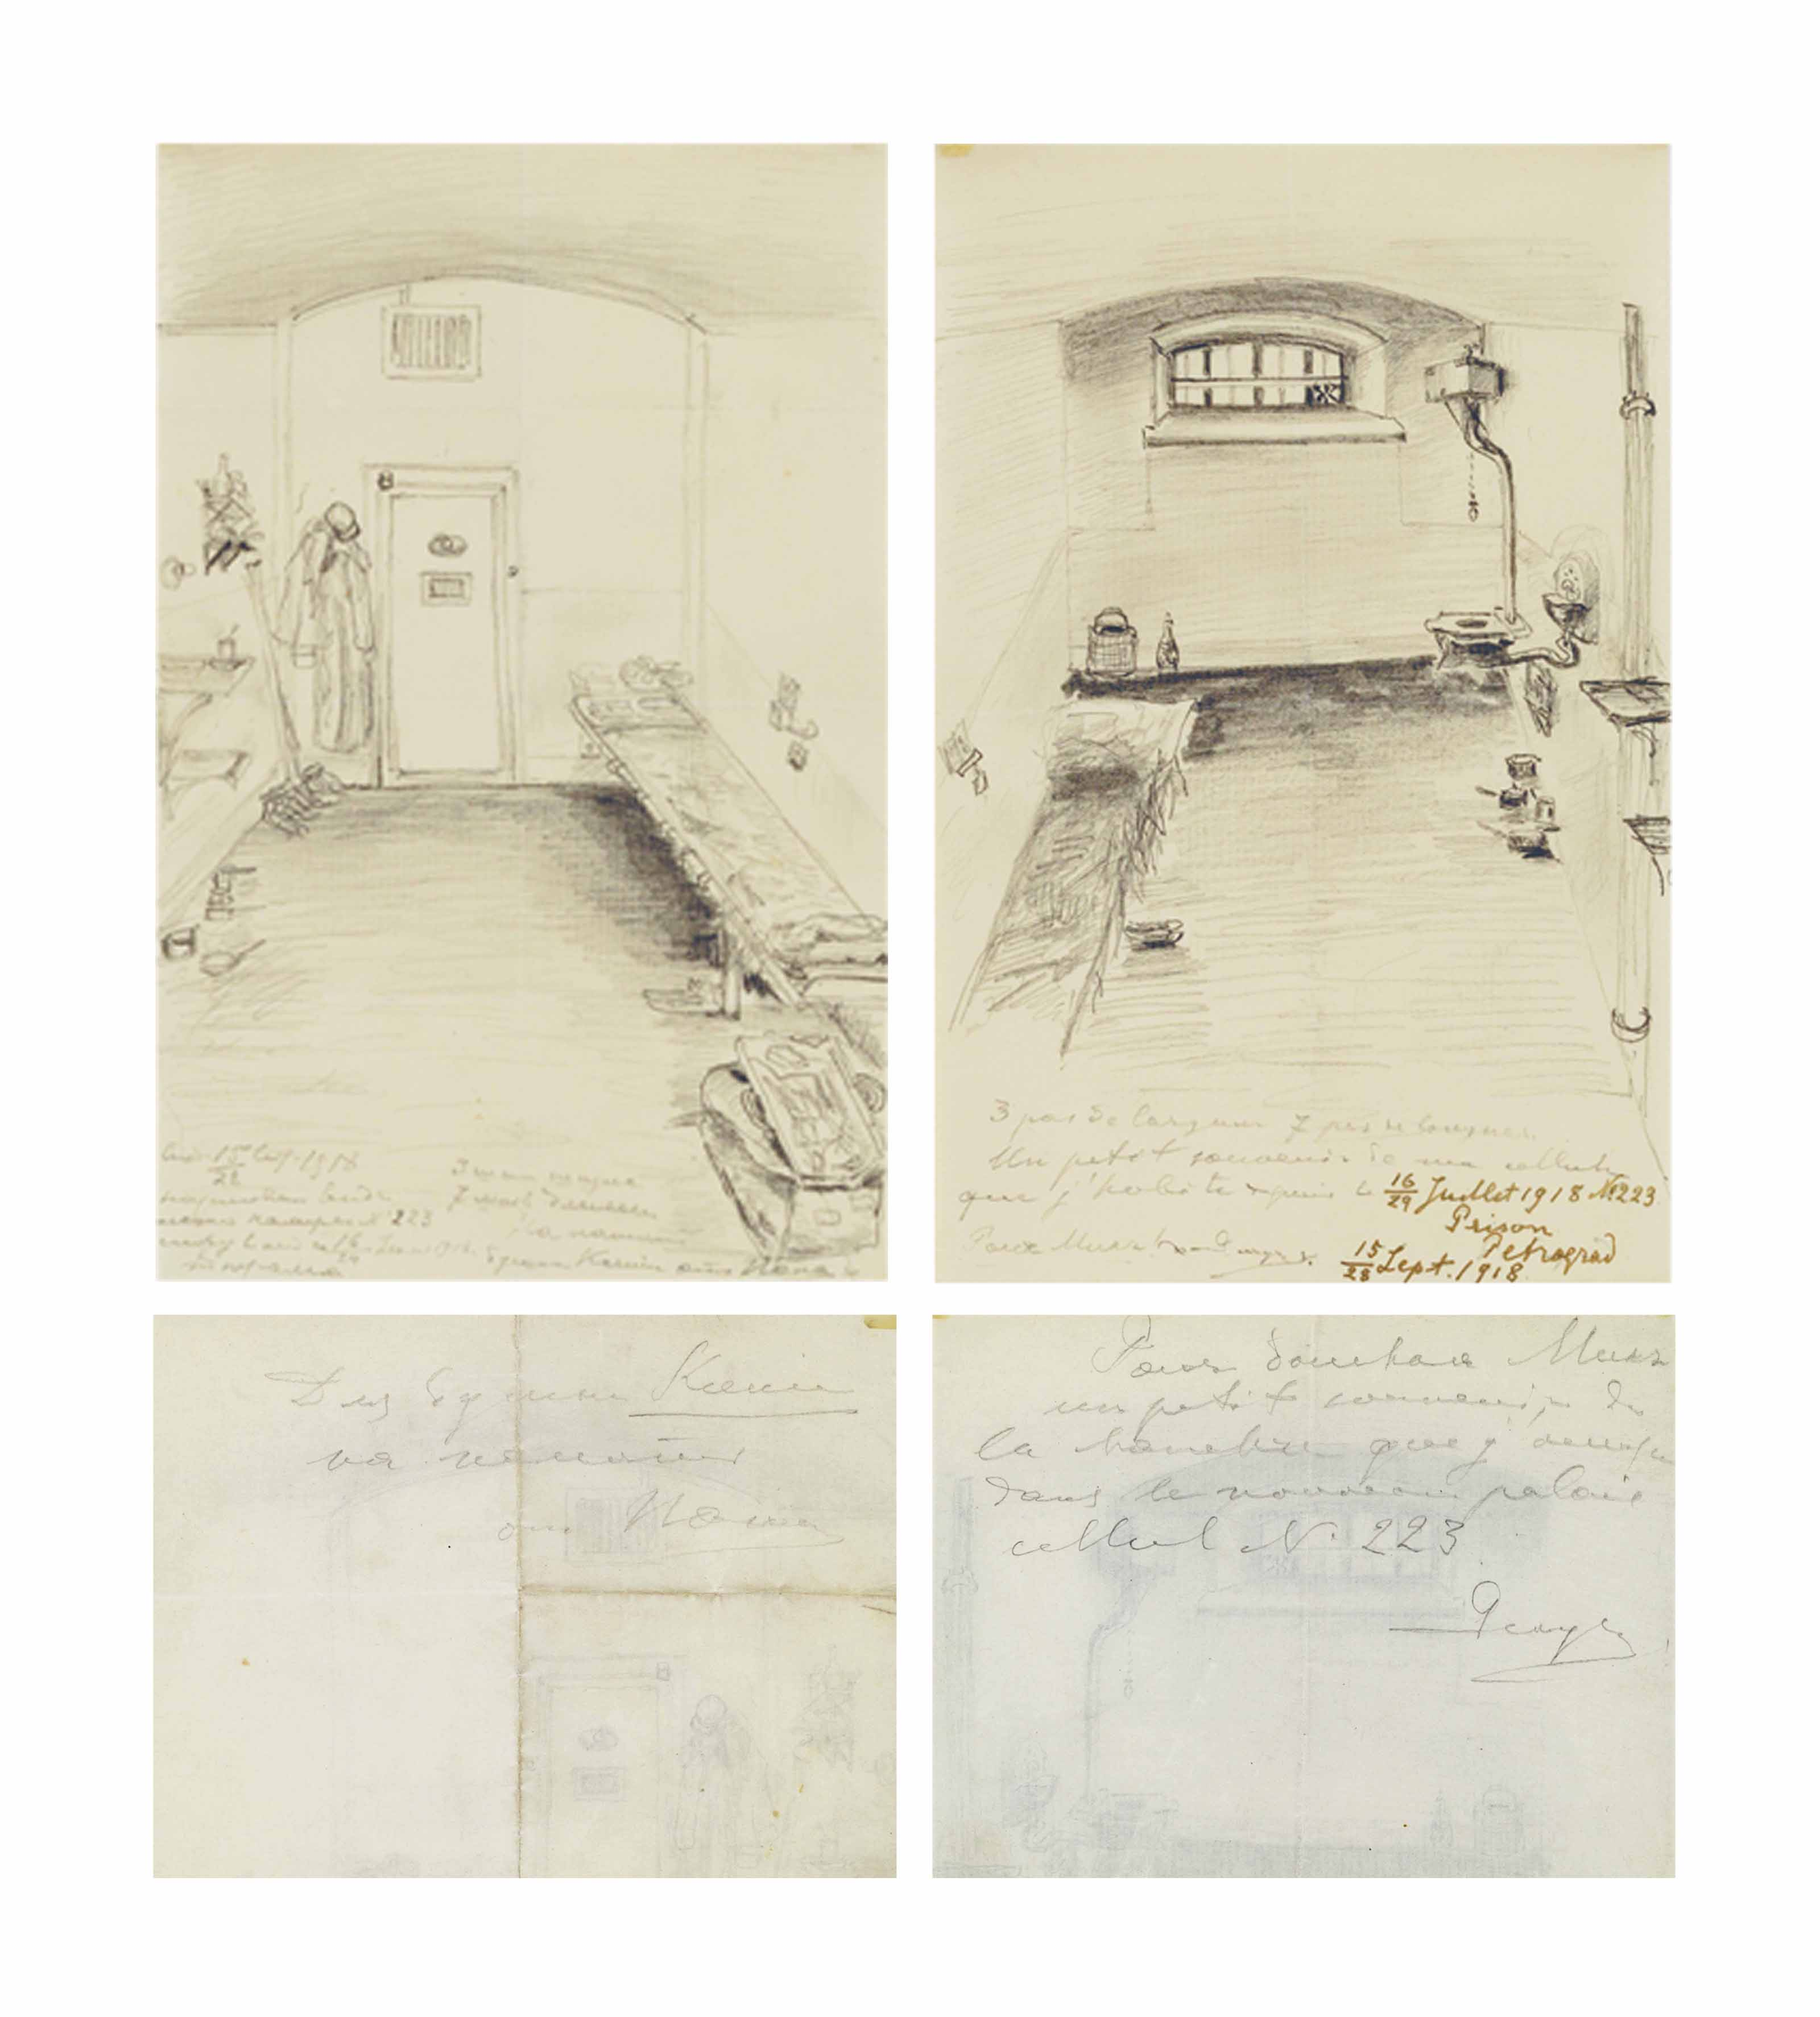 A LETTER AND DRAWING BY GRAND